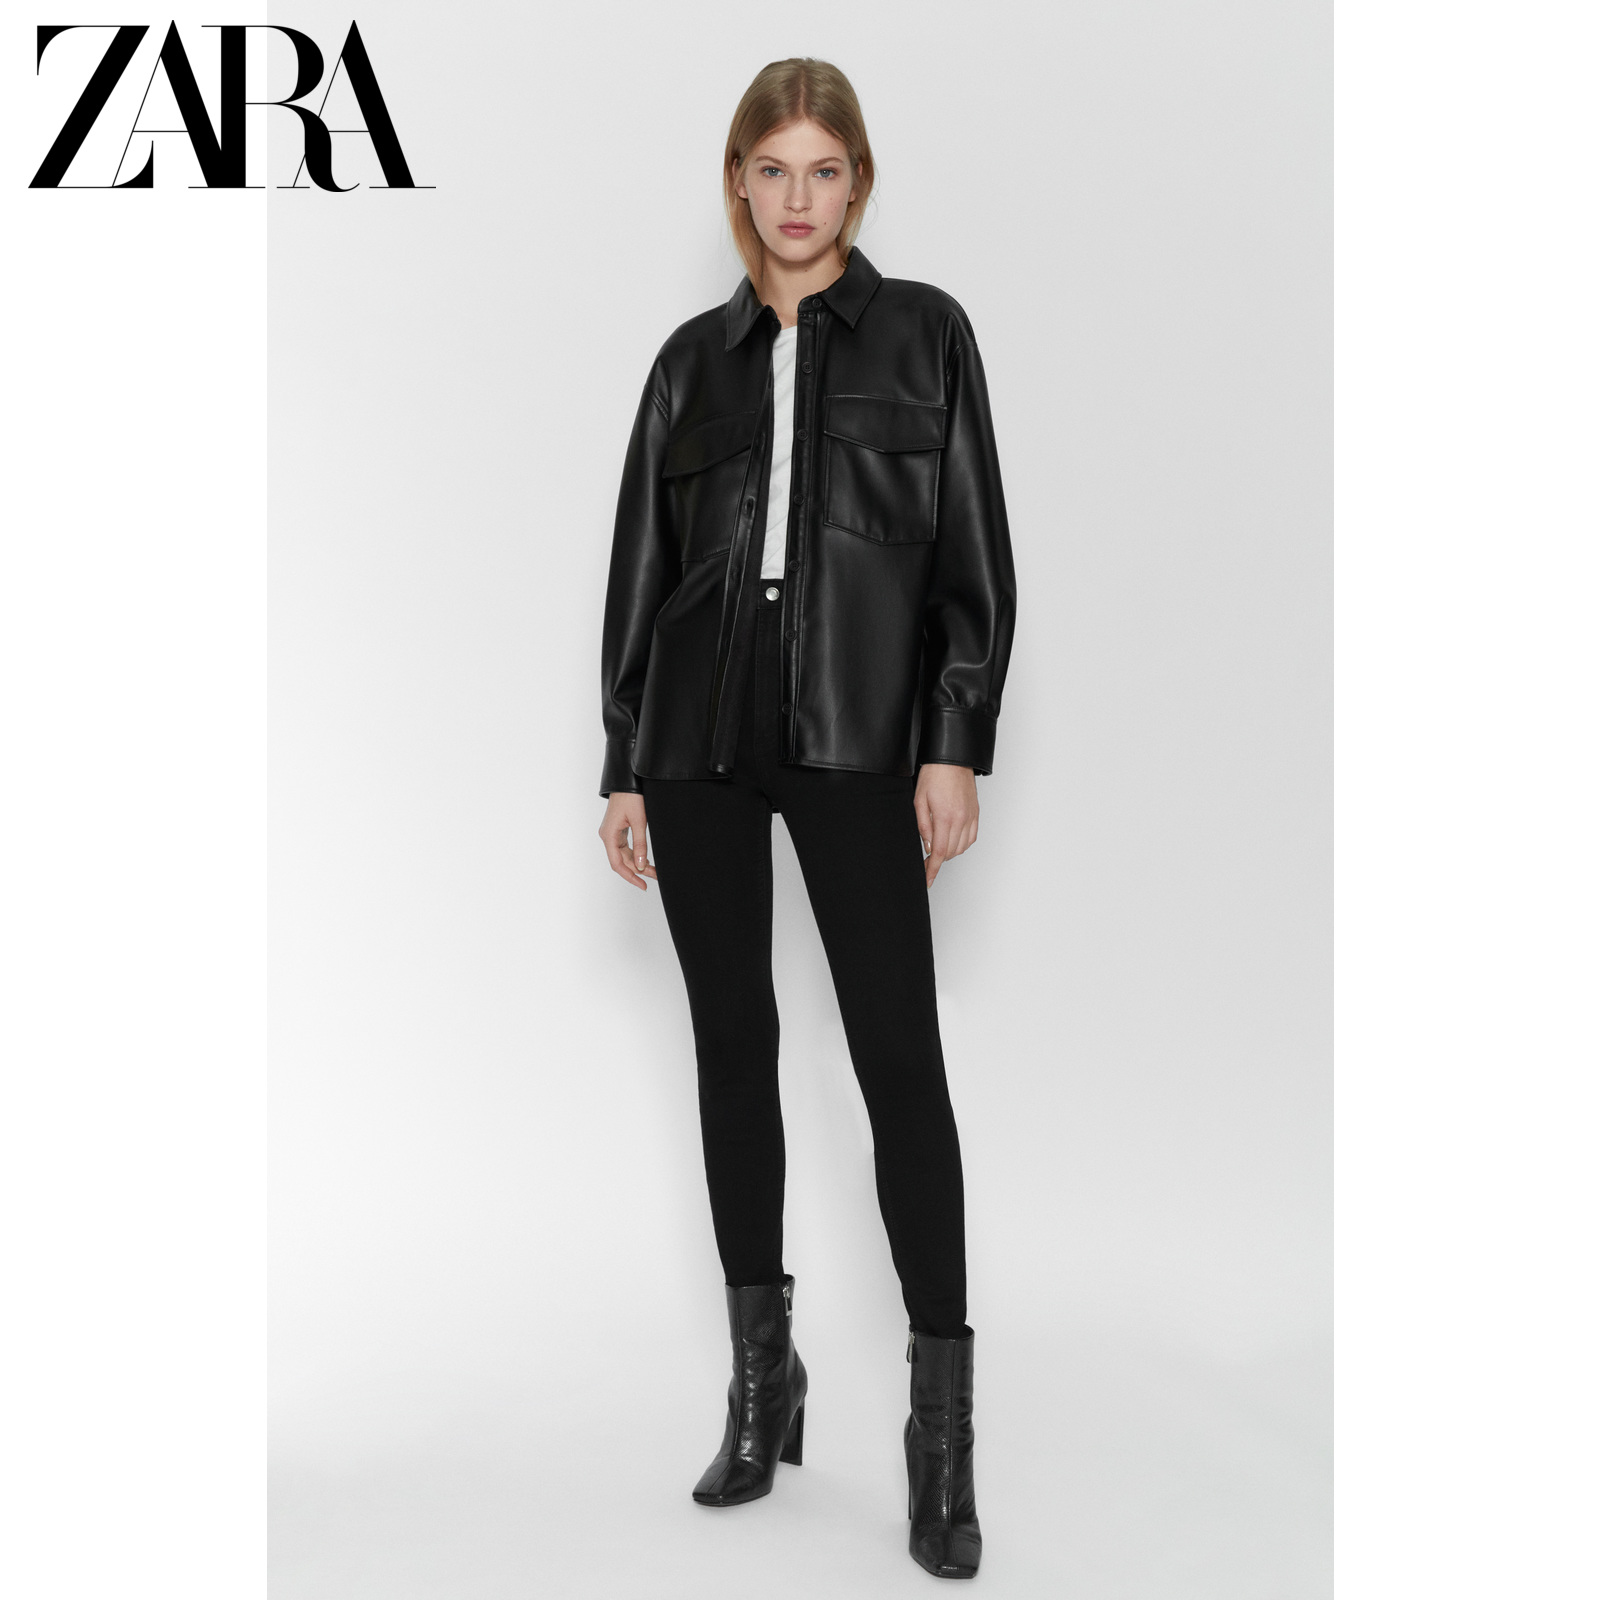 Zara new TRF women's super elastic high waist skinny jeans 05520003800